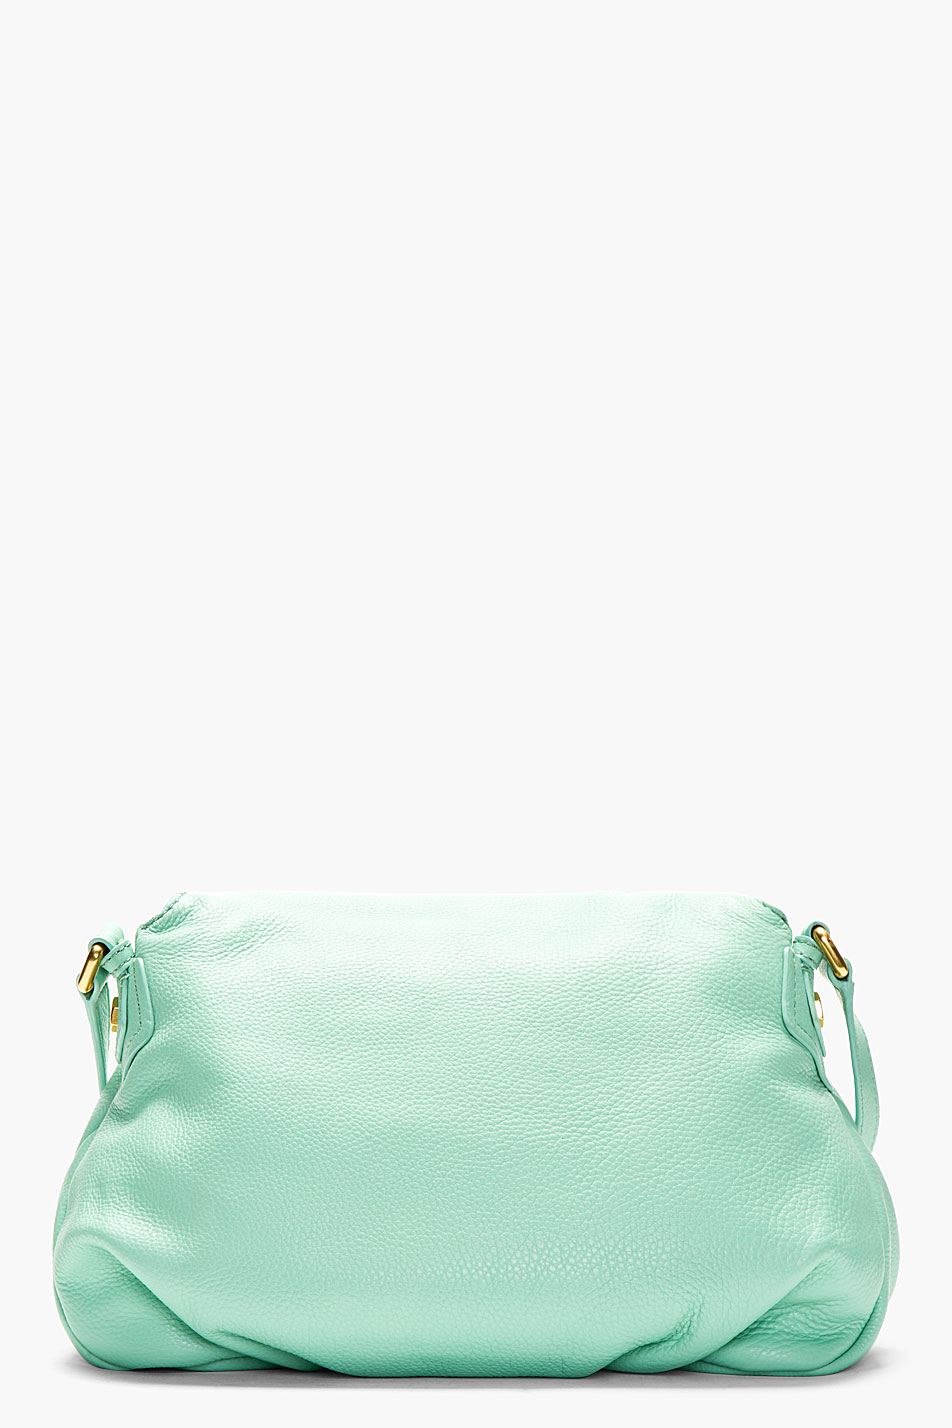 4b7167d9e3f7 M0012153-001; 275b6c5e9f7a Lyst - Marc By Marc Jacobs Mint Green Classic Q  Natasha Shoulder Bag .